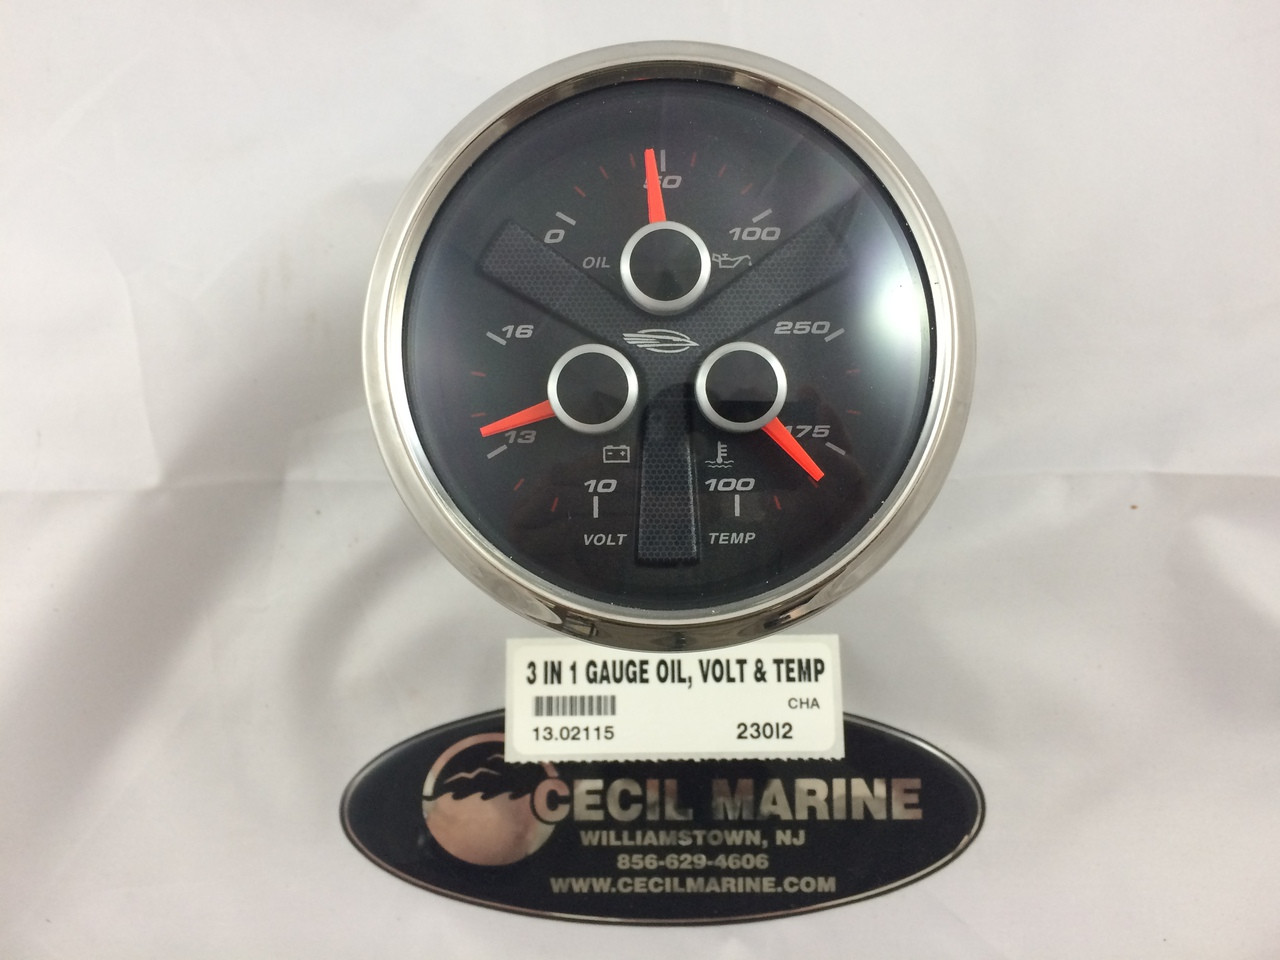 3 IN 1 GAUGE OIL, VOLT & TEMP 13.02115 - In Stock & Ready To Ship!